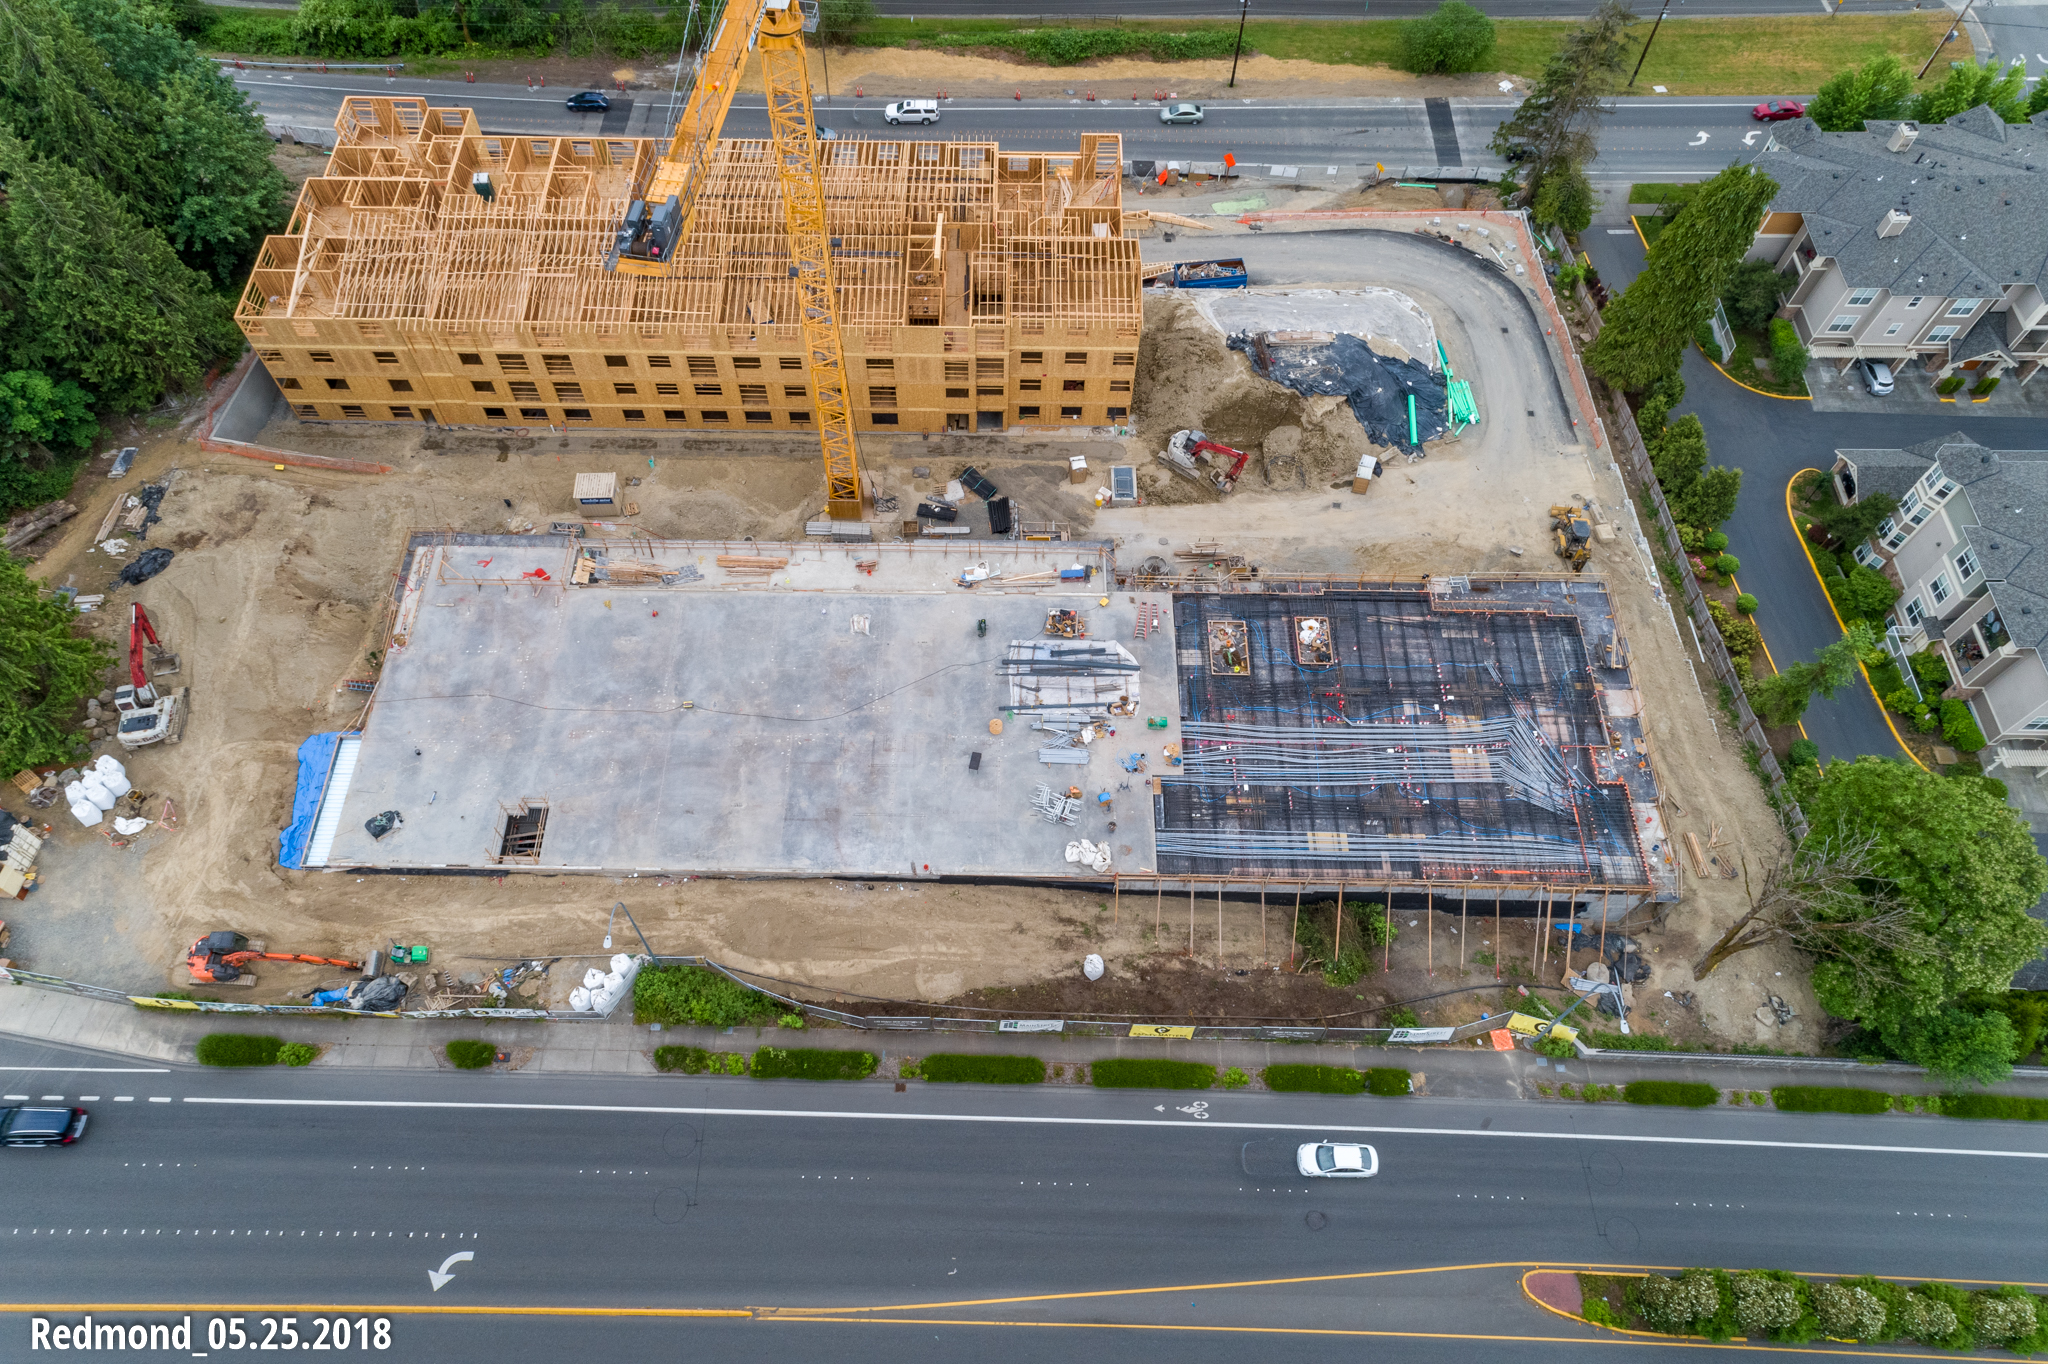 Kyle Ventle_NorthWest Drone Works_ Redmond Construction Aerial Photography-4.jpg